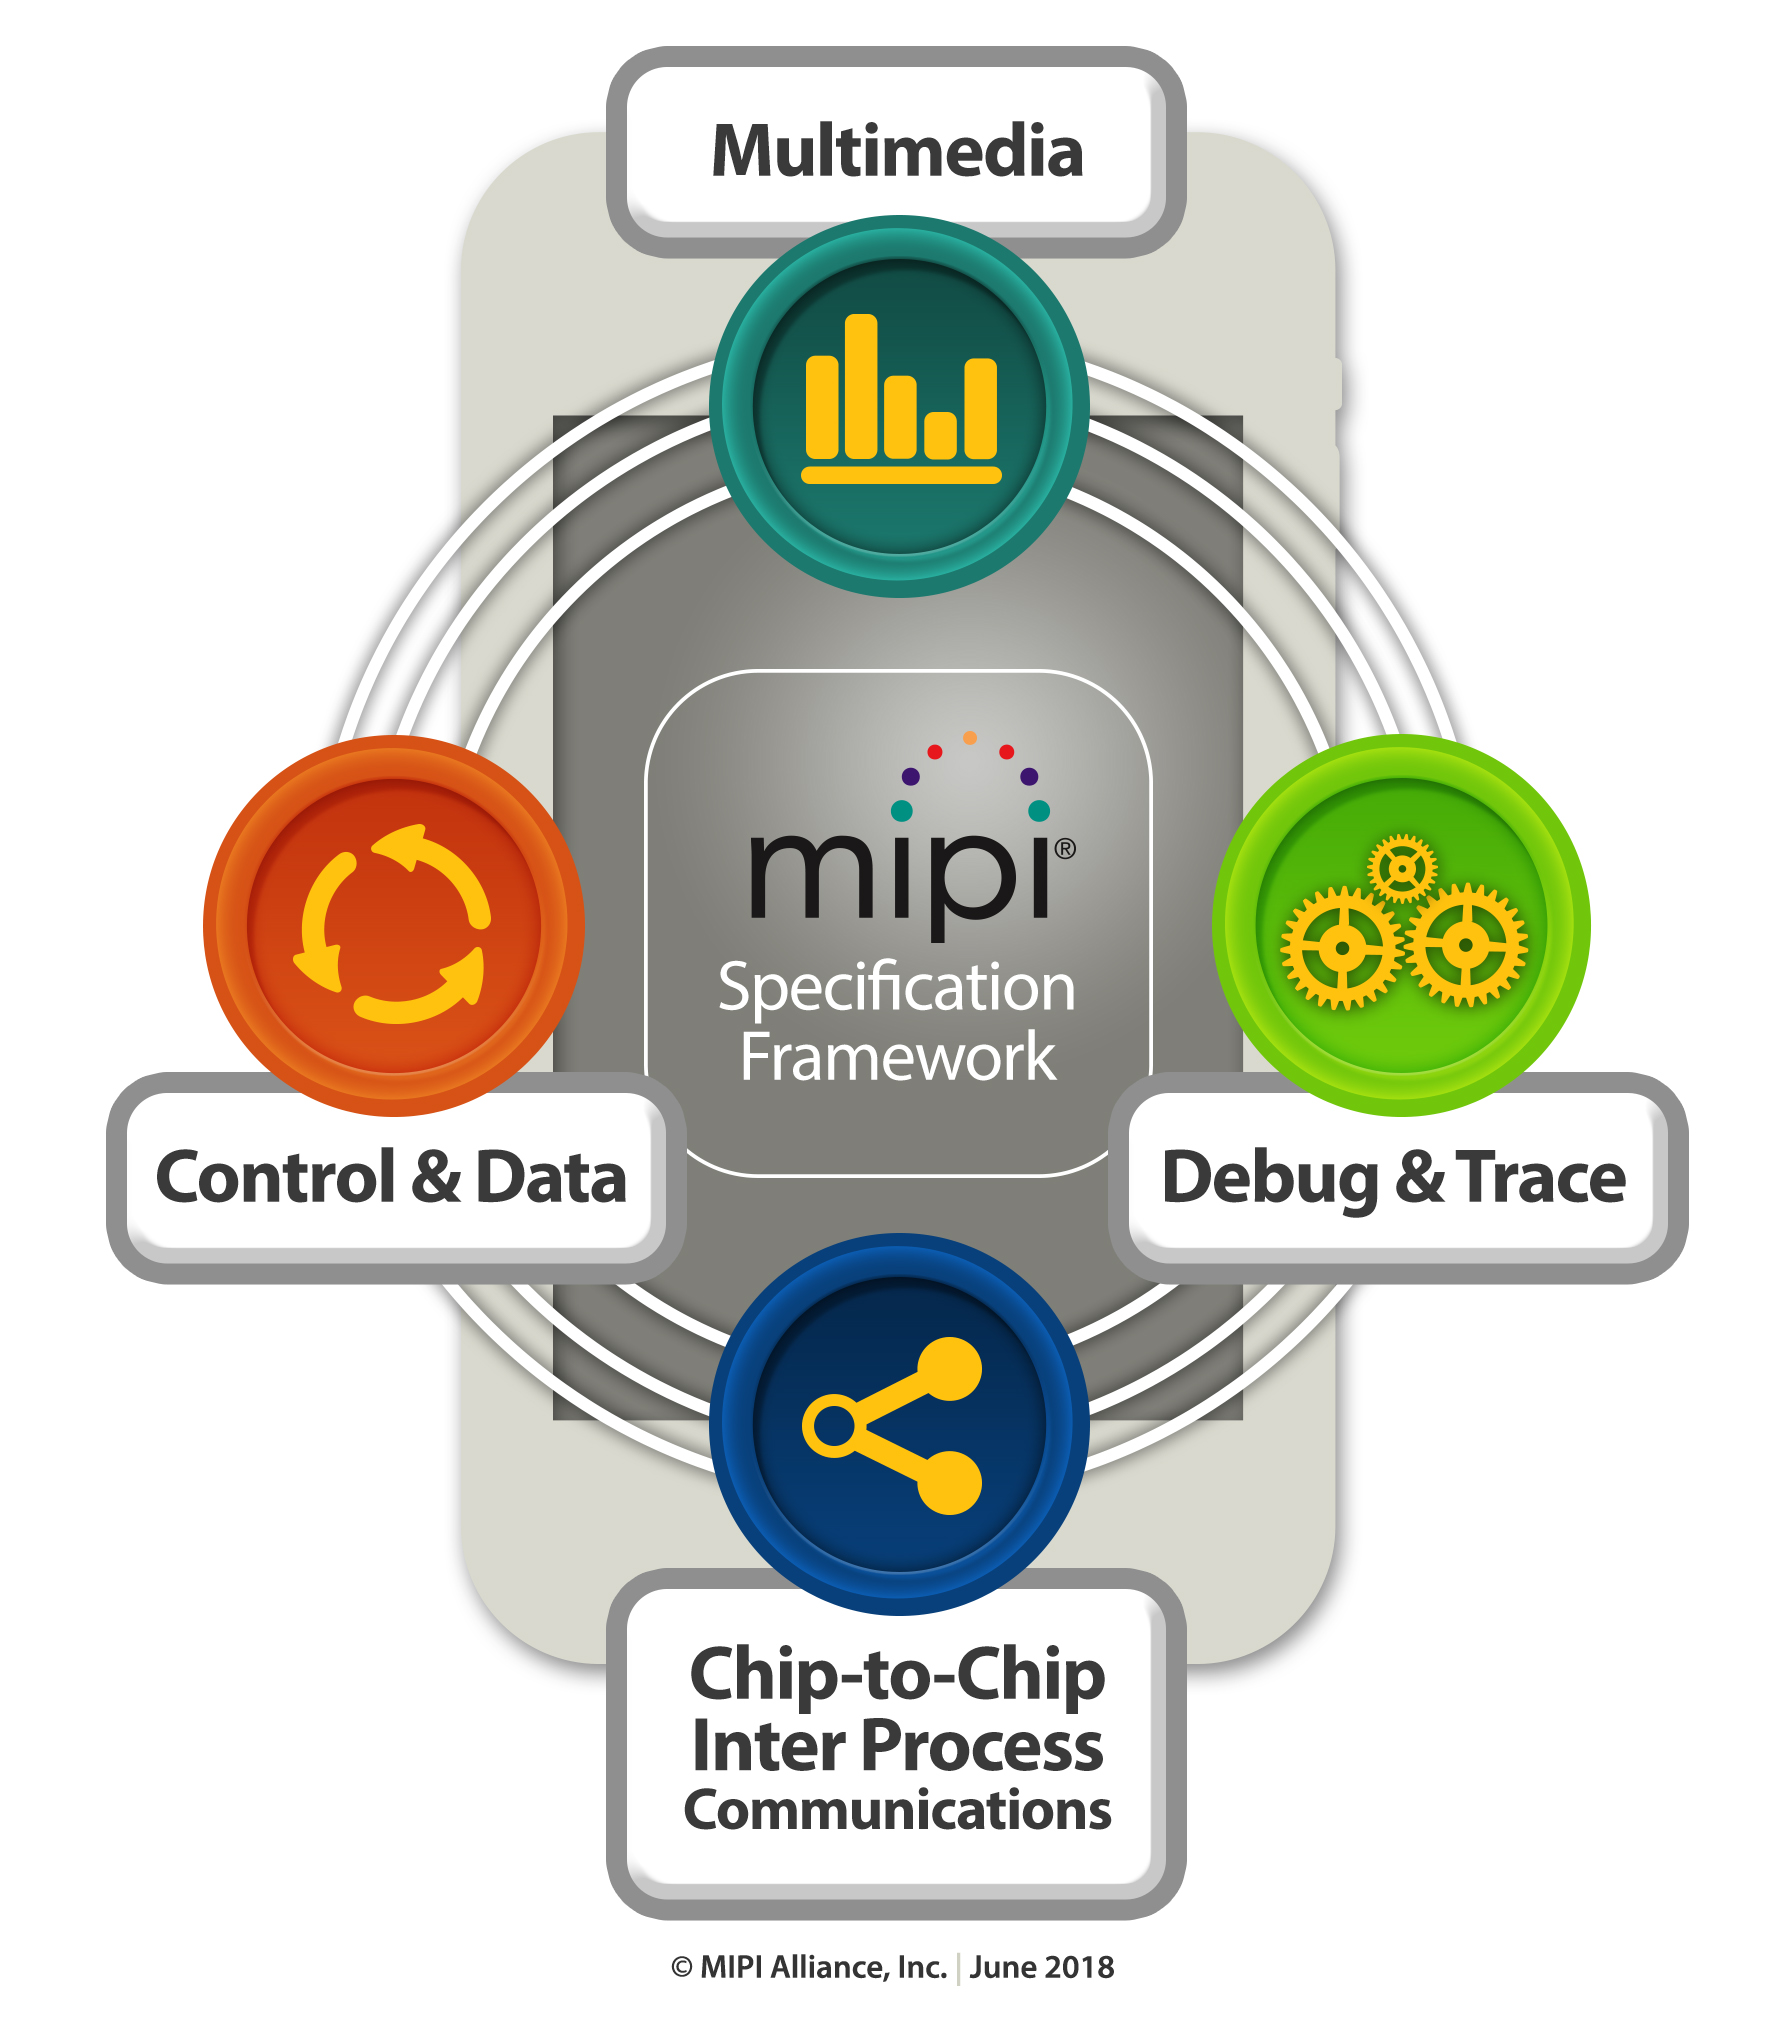 MIPI Specification Framework